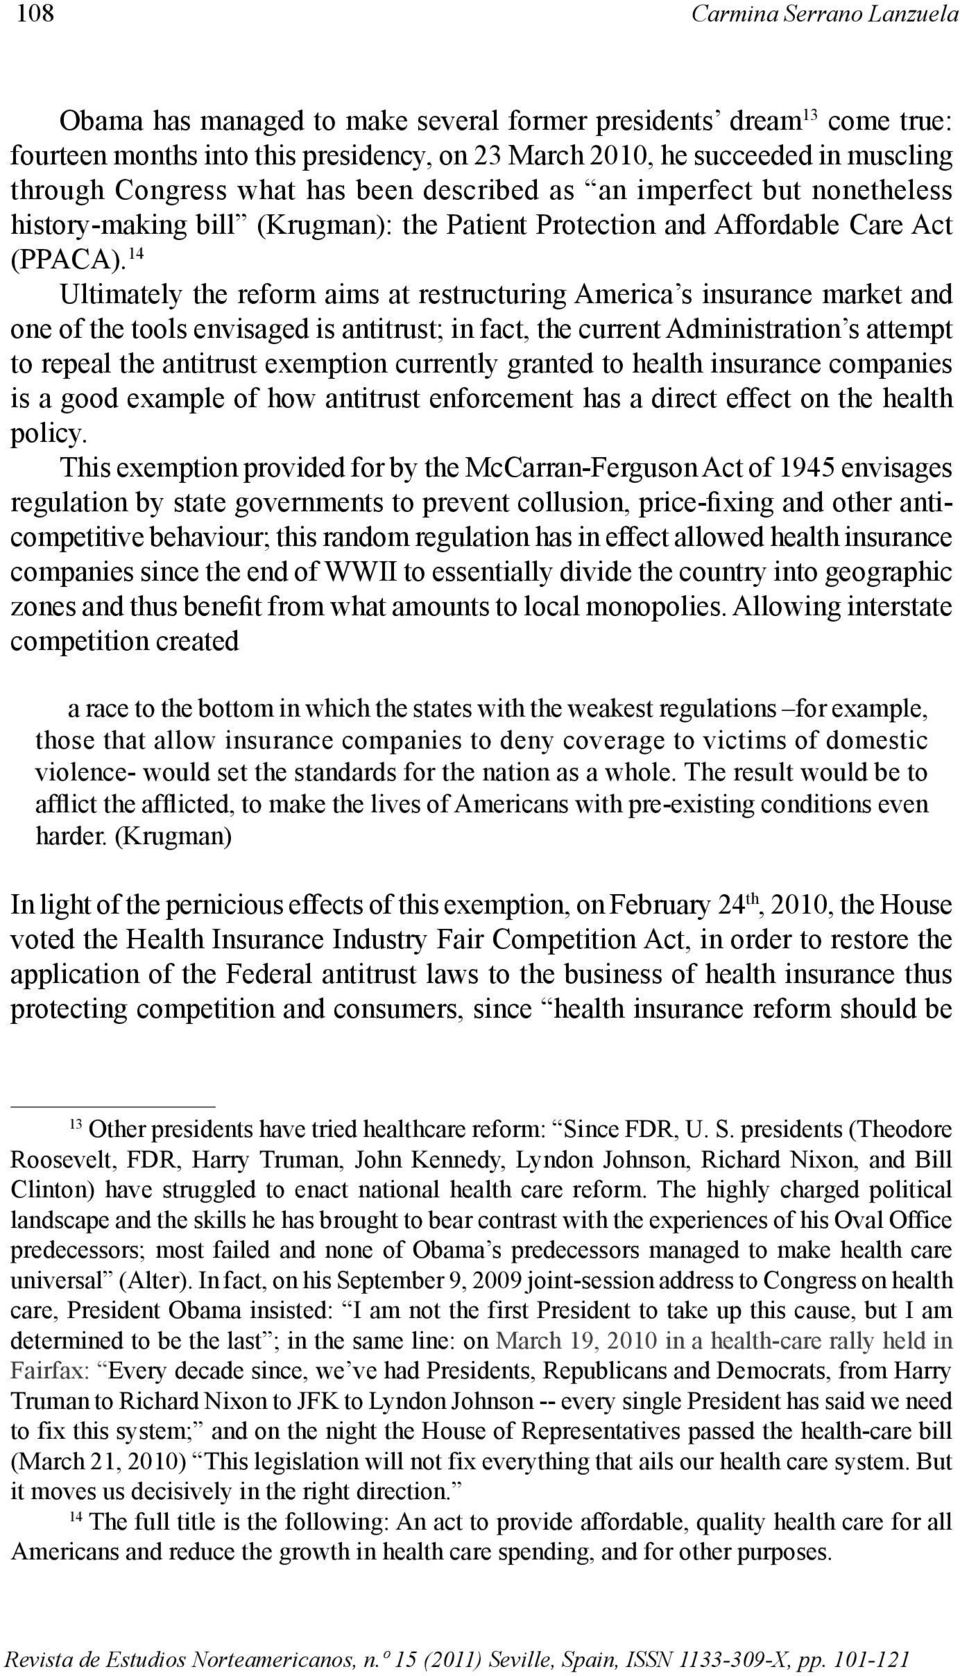 14 Ultimately the reform aims at restructuring America s insurance market and one of the tools envisaged is antitrust; in fact, the current Administration s attempt to repeal the antitrust exemption